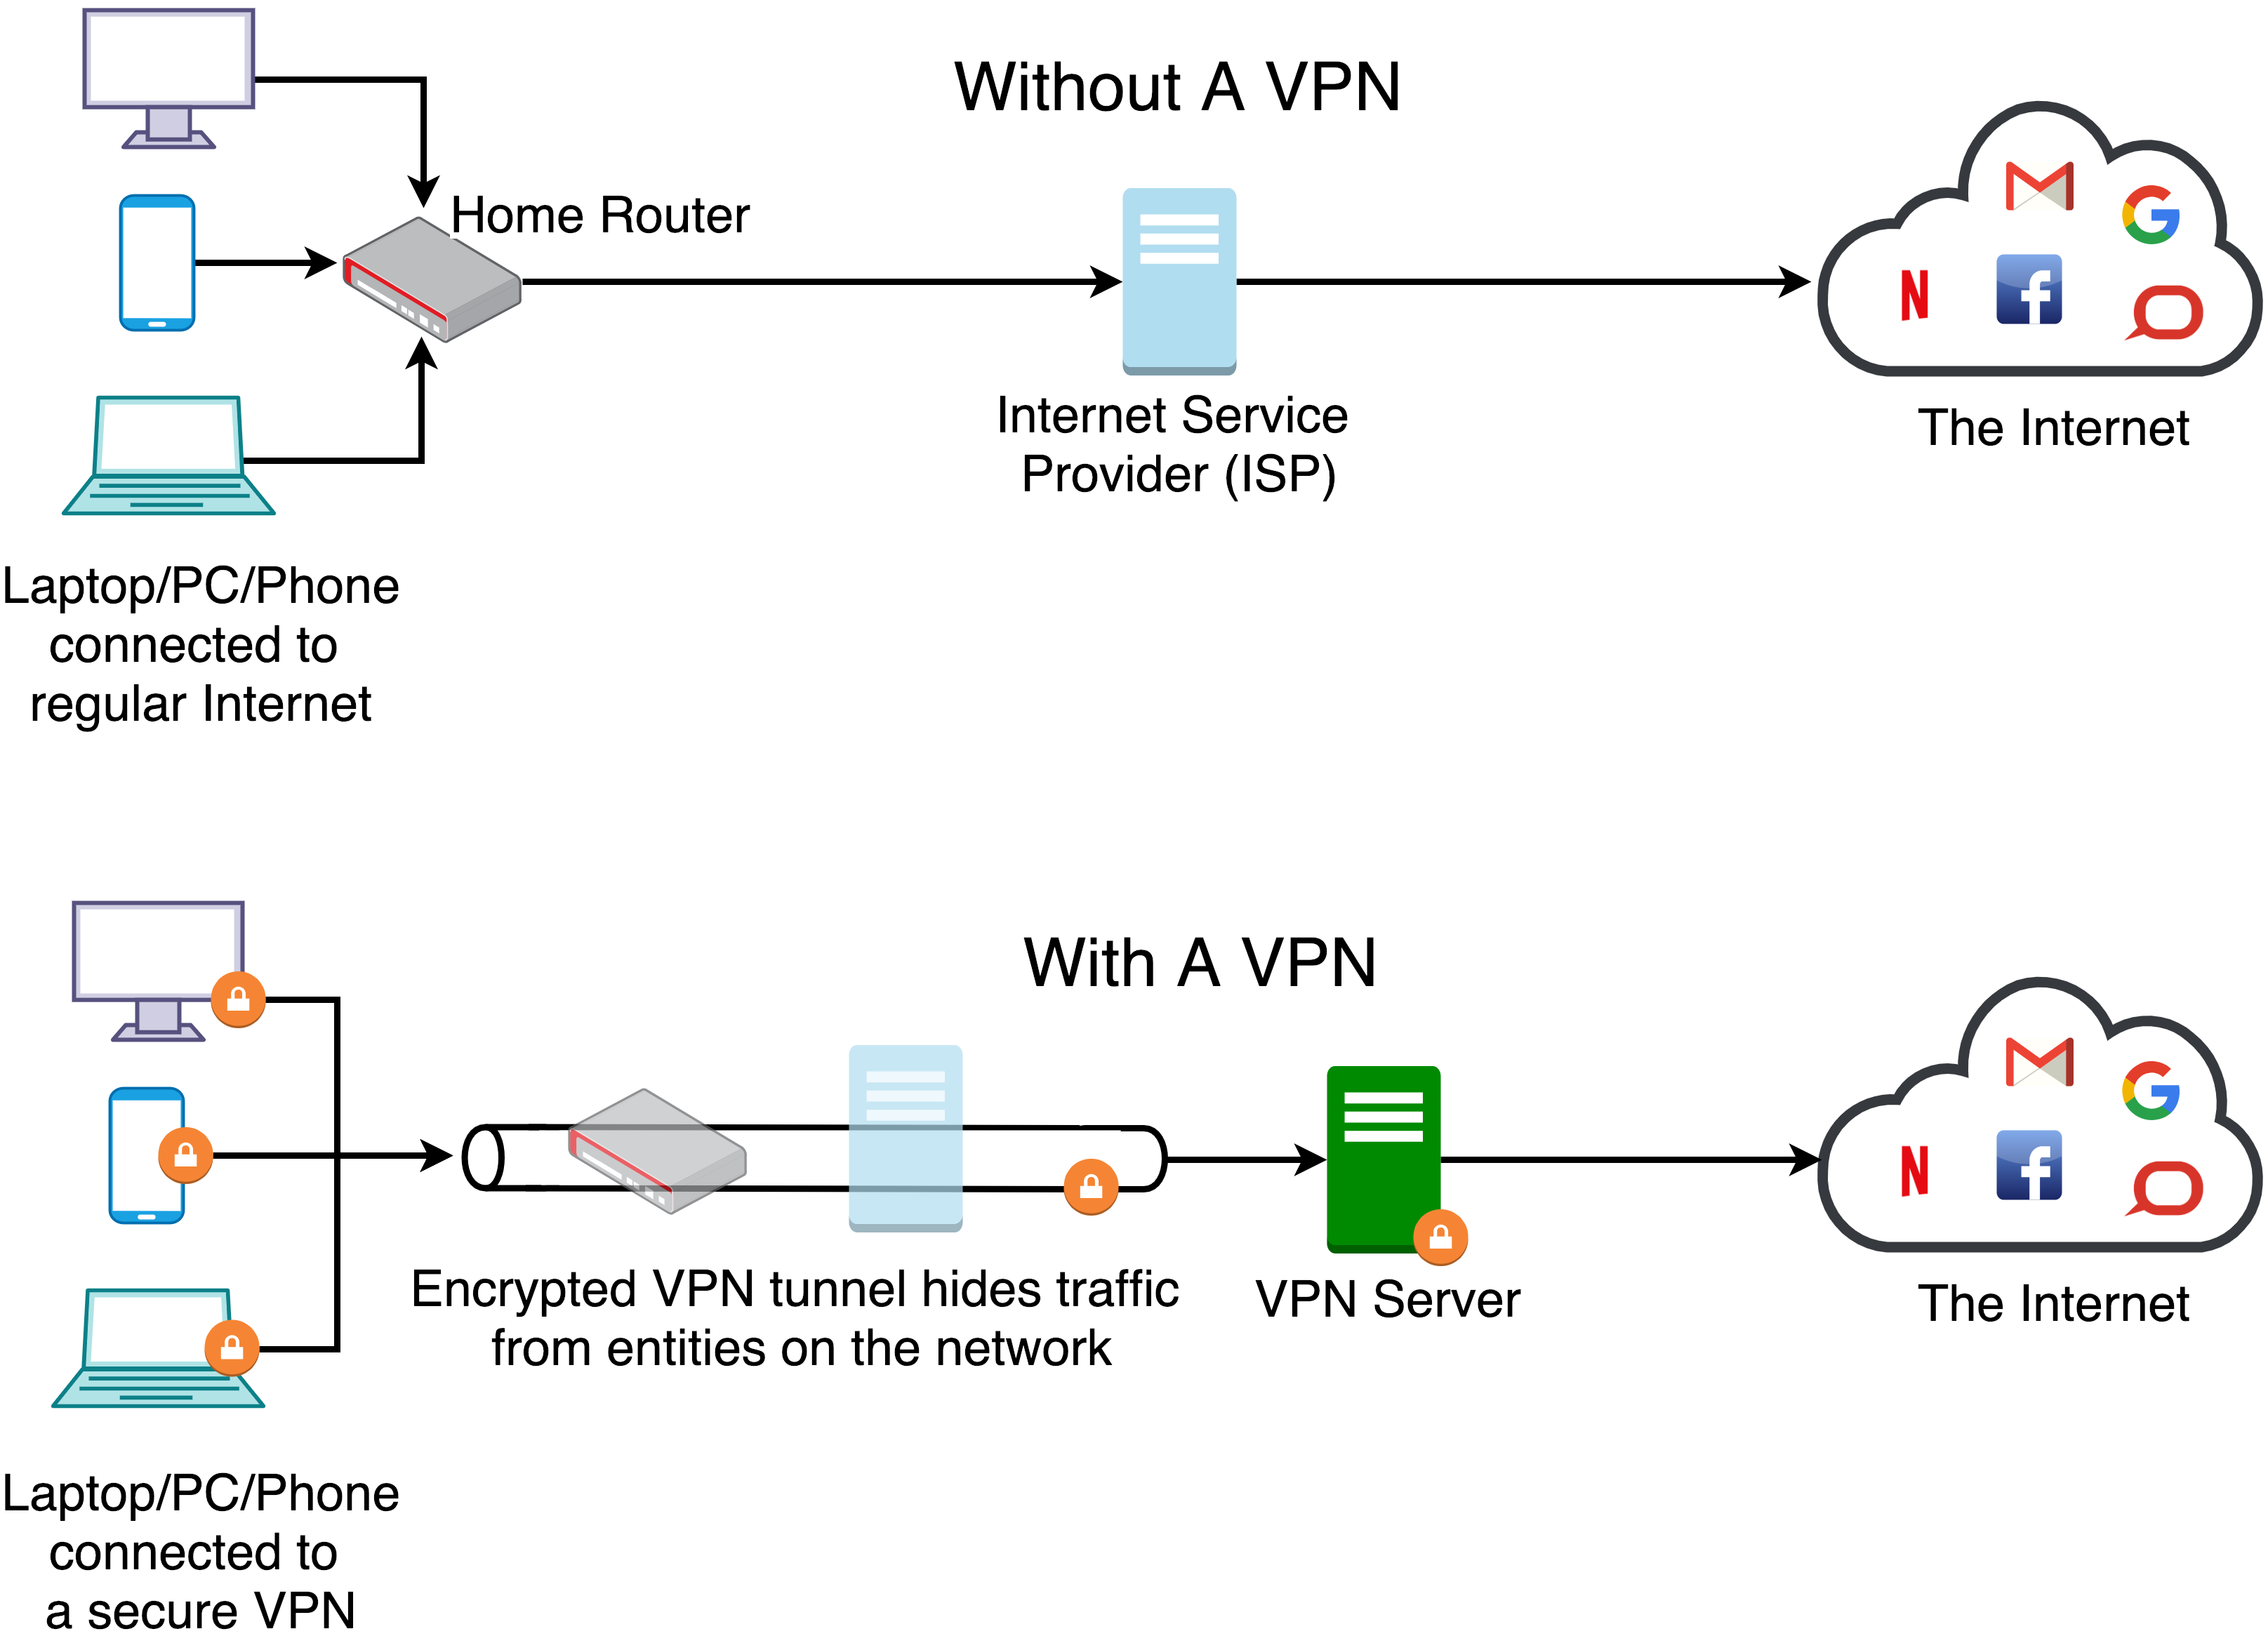 VPN Services: There's Bad News About All Those Good Reviews   Inverse